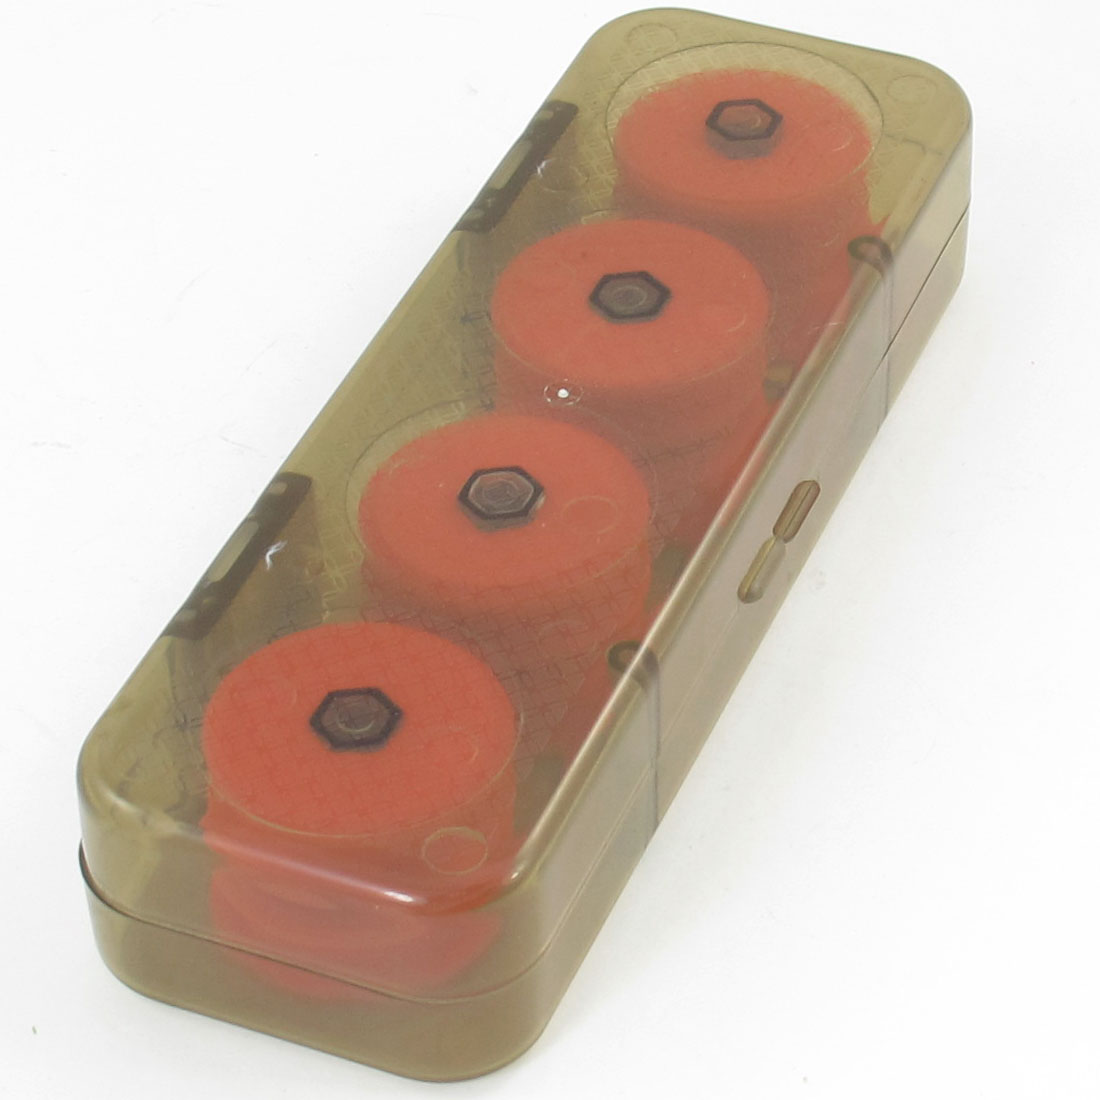 8 Pcs Red Foam Fishing Line Bobbin Spools w Olive Green Plastic Storage Case